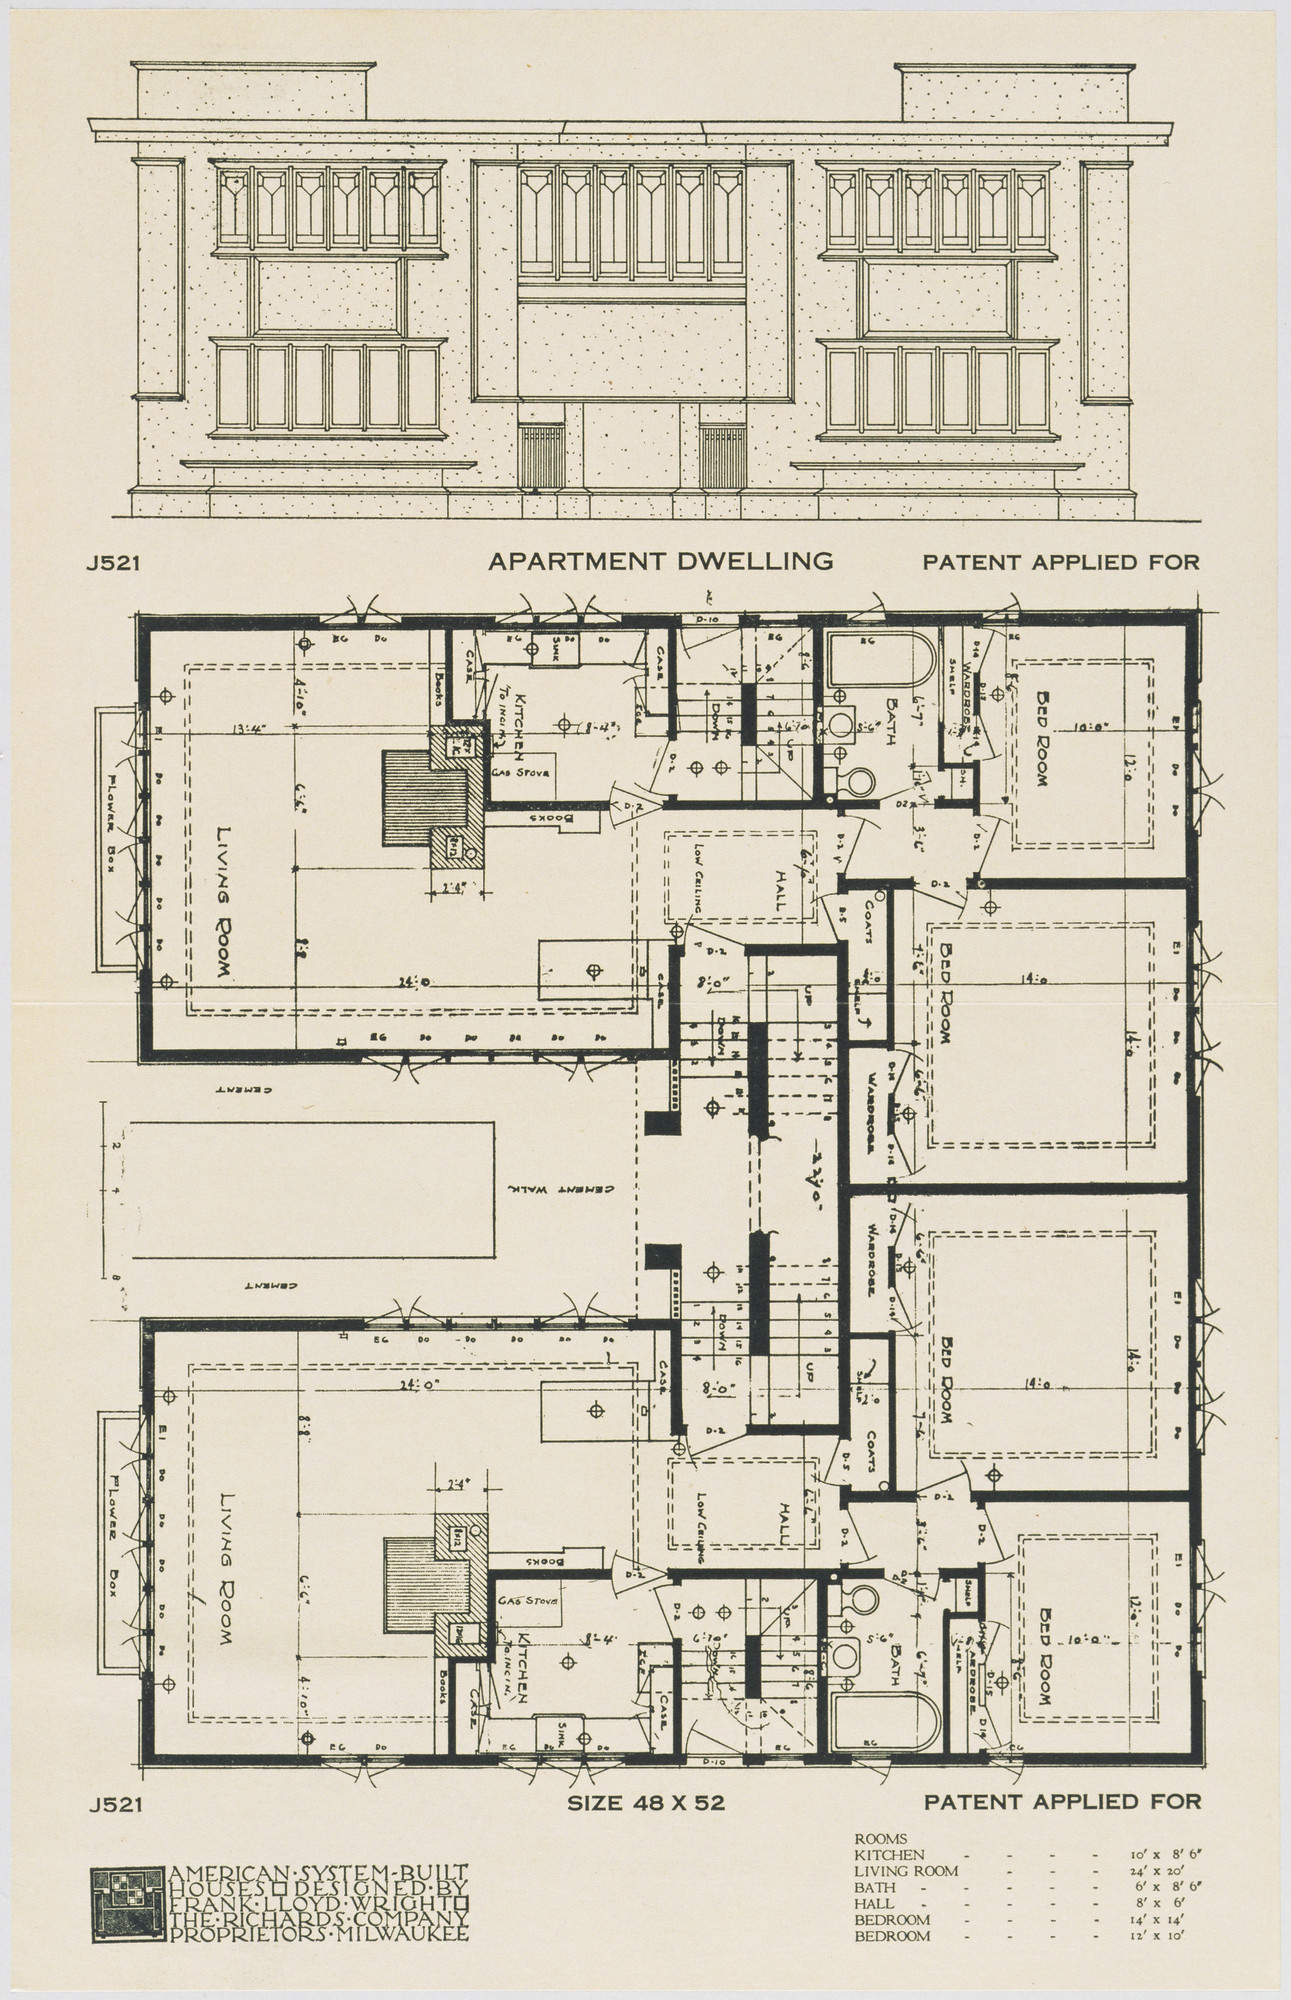 Frank Lloyd Wright. American System-Built Houses for The Richards Company, project, Milwaukee, Wisconsin, Apartment Dwelling Plan and Elevation. c. 1915-17